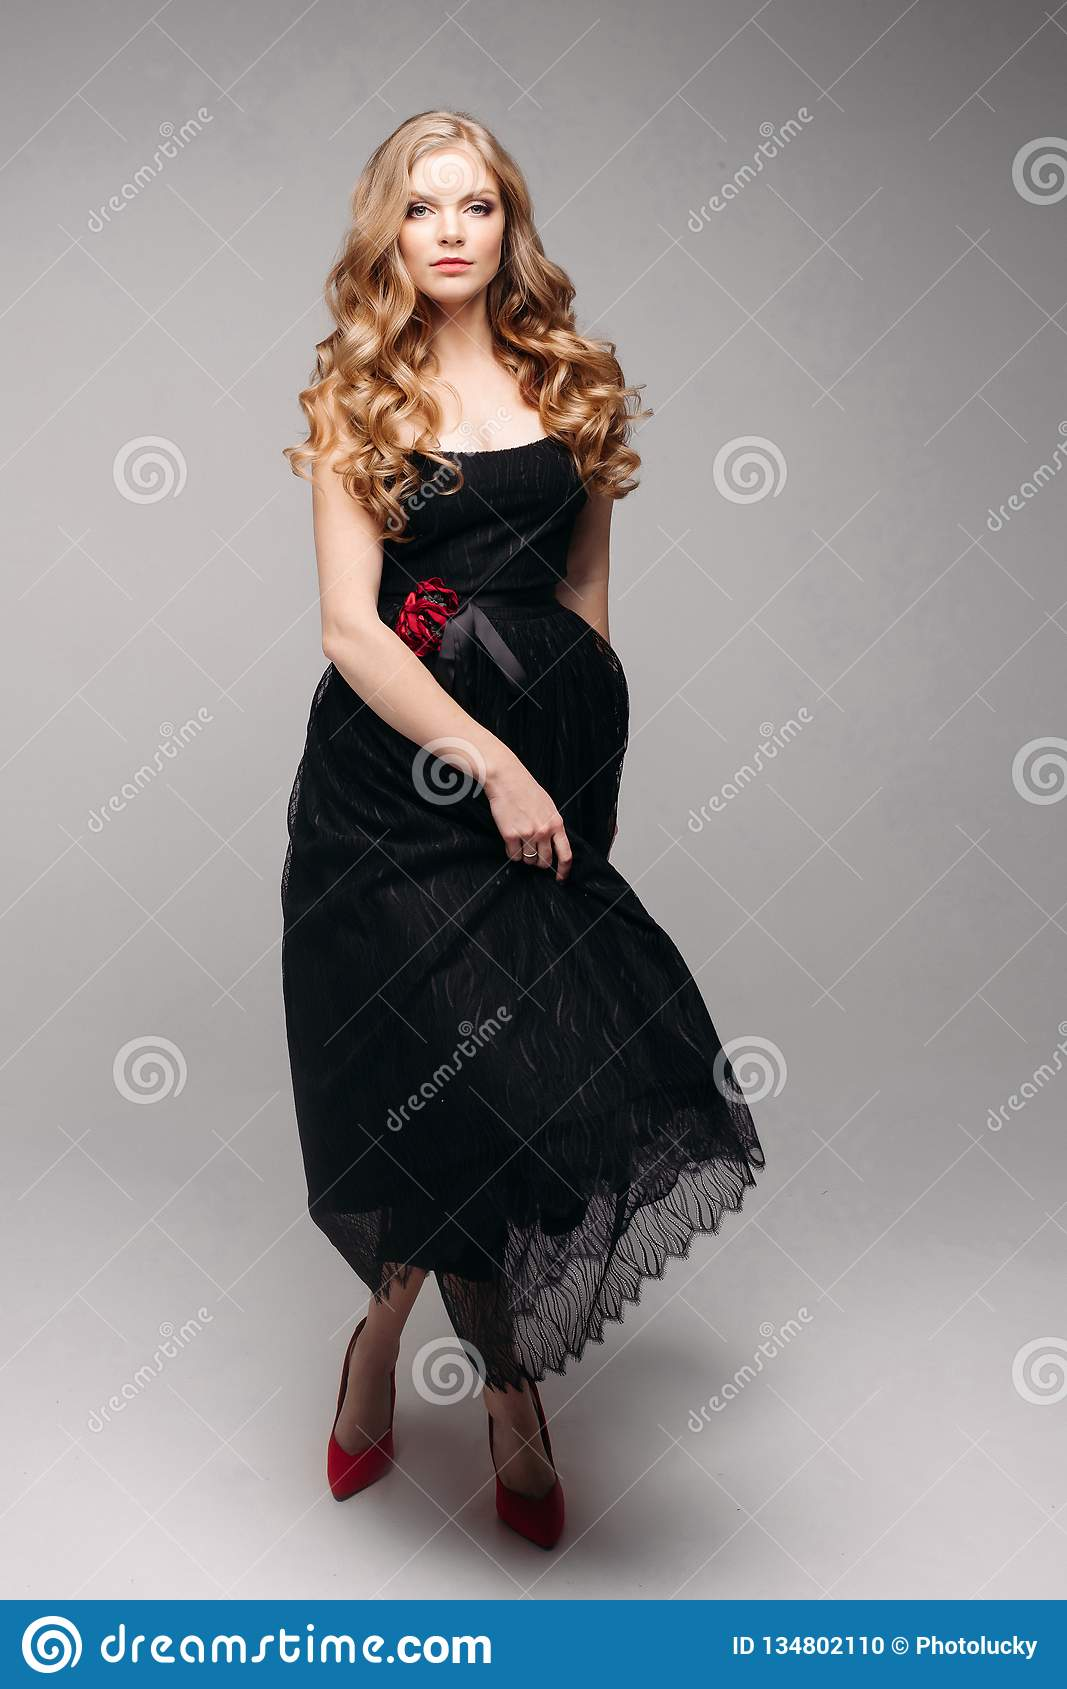 925db94e783 Beautiful Girl With Red Hair In Black Dress And Red Heels Stock ...